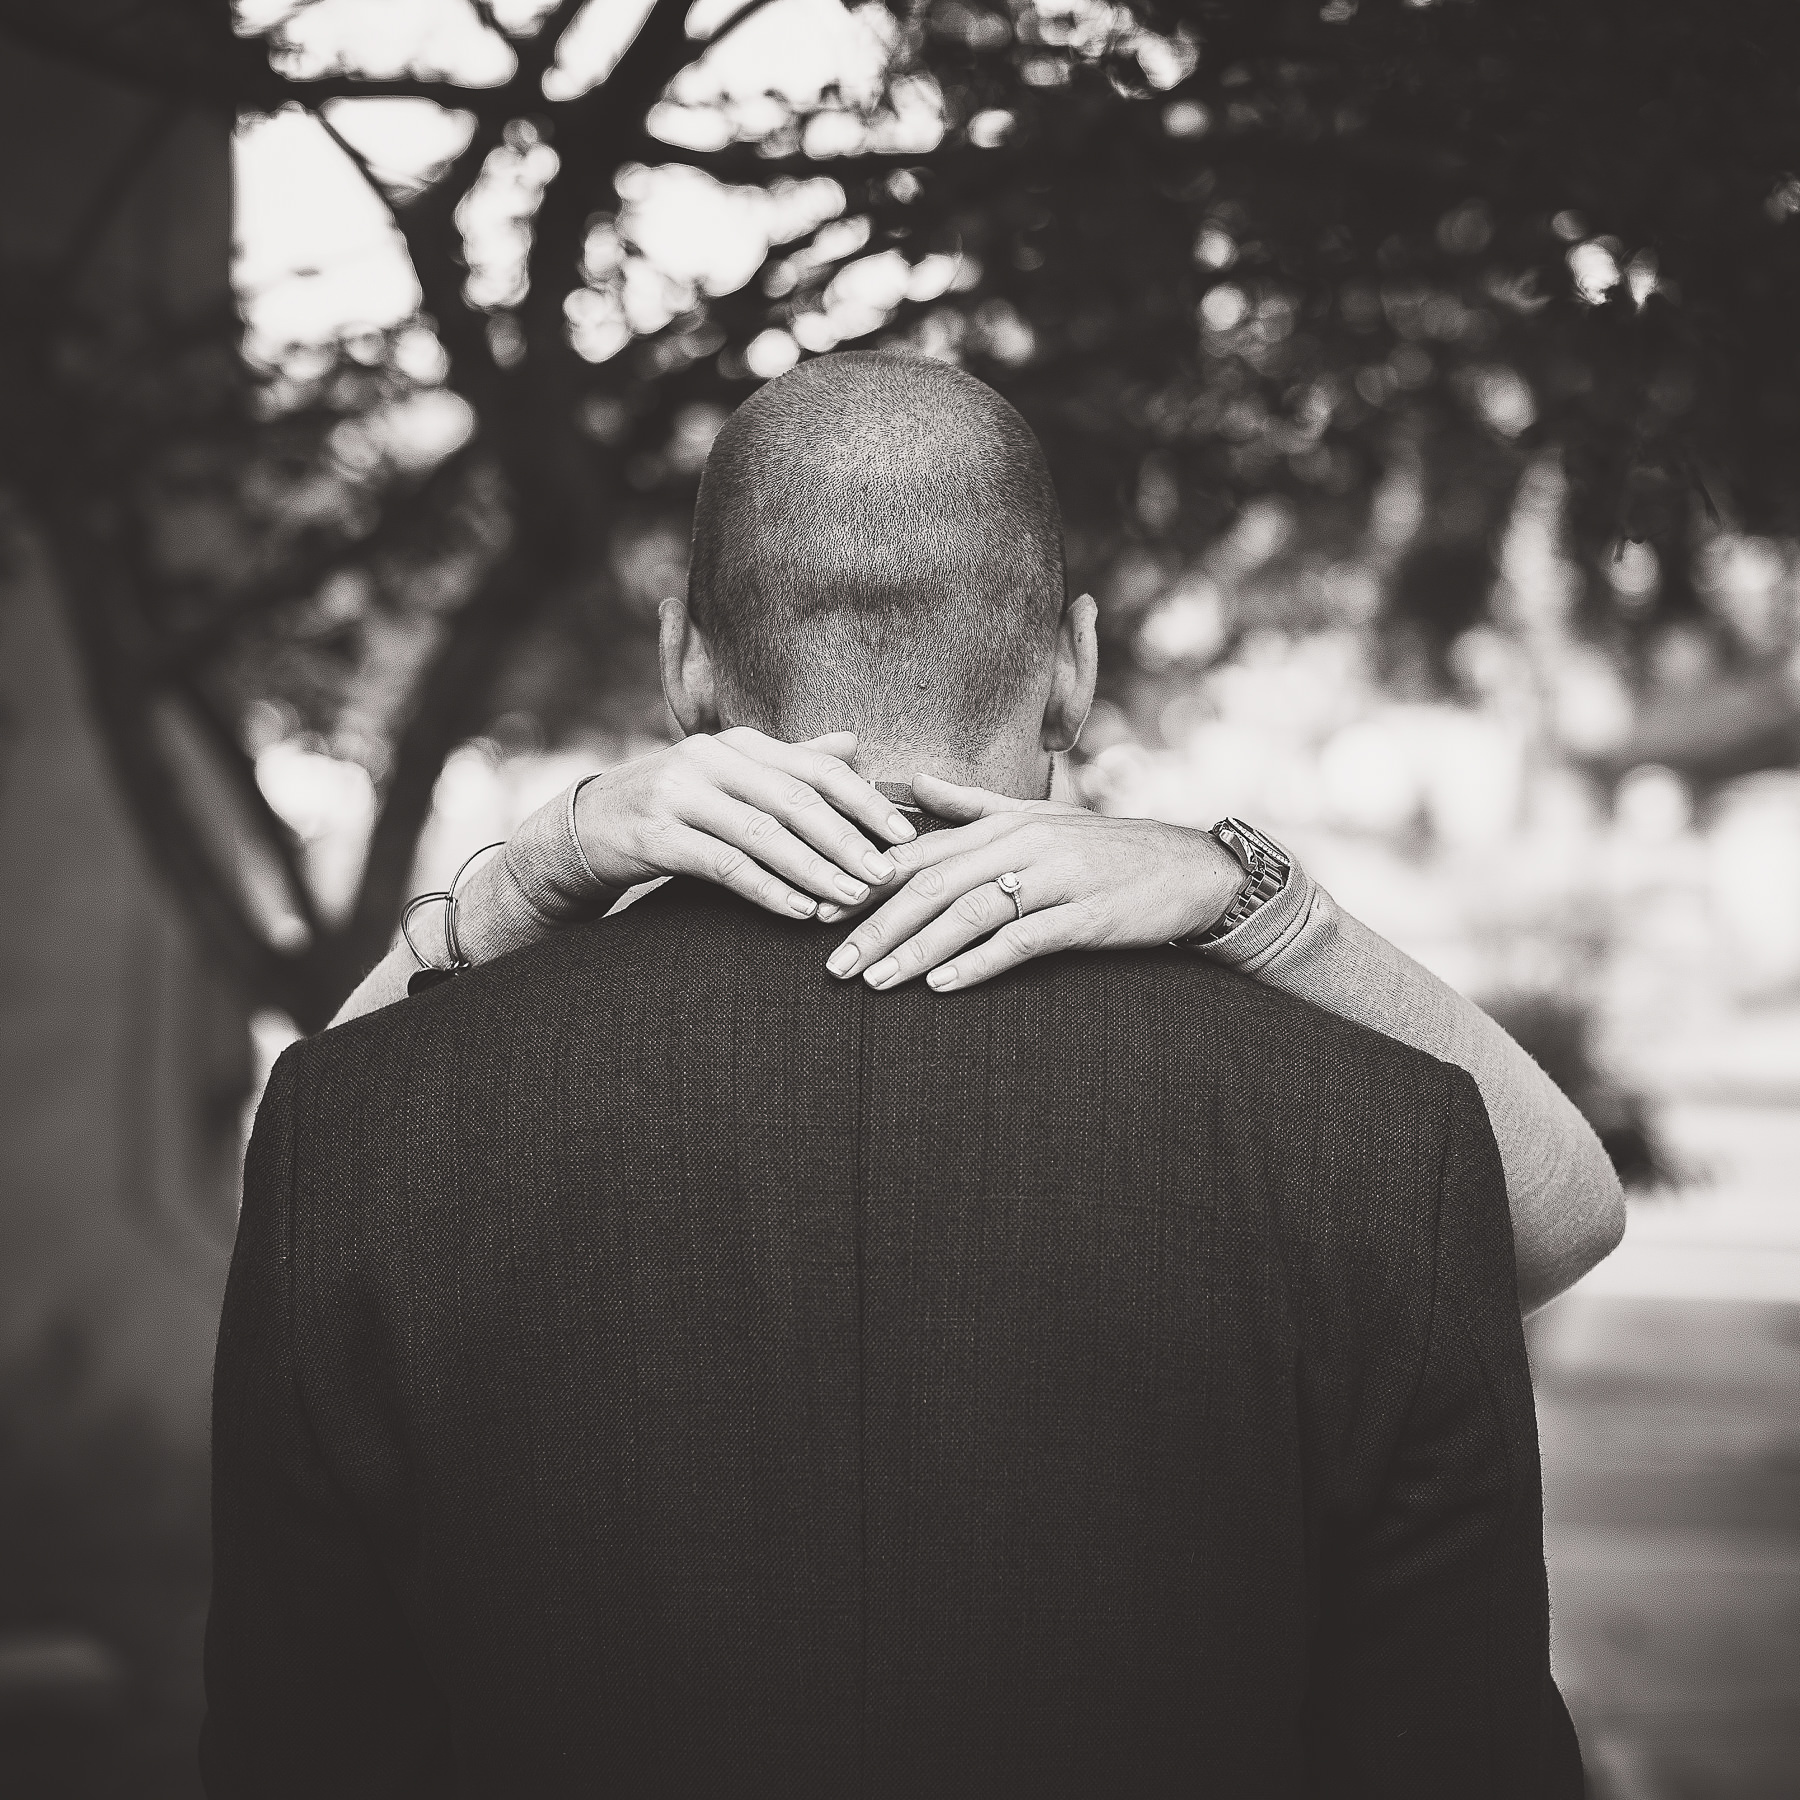 breighton-and-basette-photography-copyrighted-image-blog-emily-and-dave-engagement-029.jpg